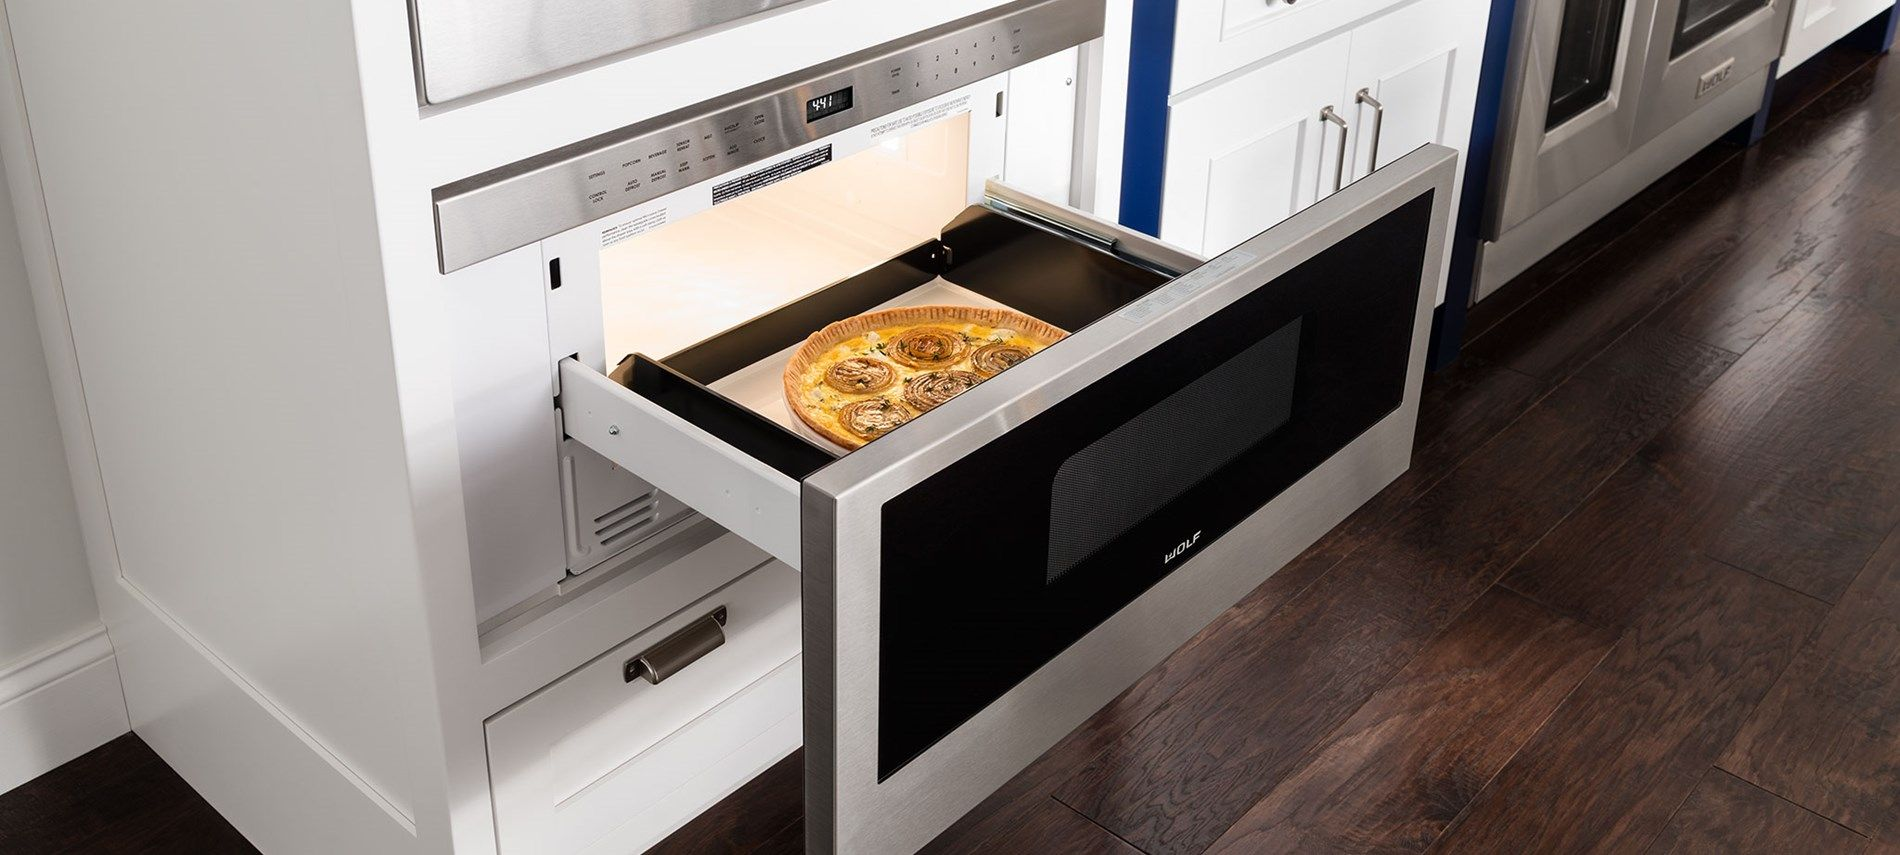 30 Professional Drawer Microwave Microwave Drawer Dream